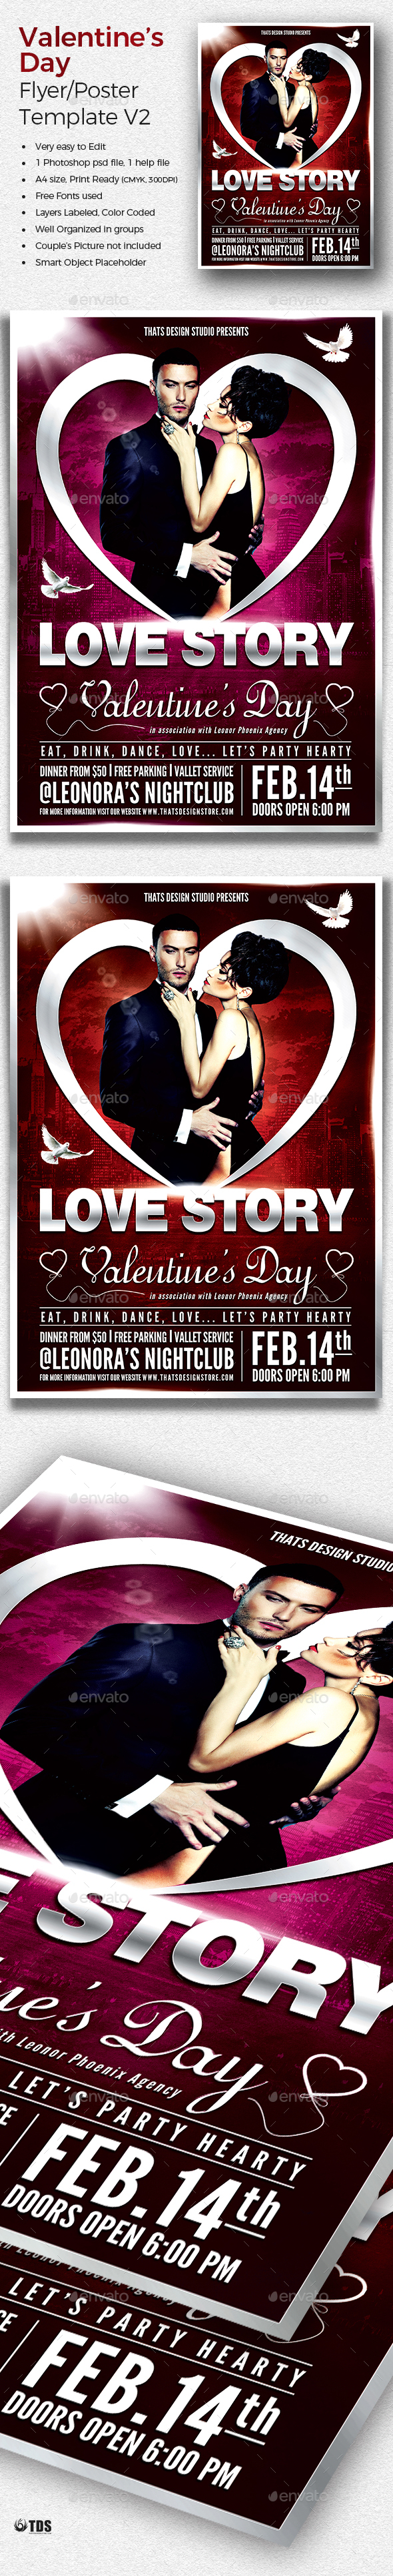 Valentines Day Flyer Template V2 - Clubs & Parties Events